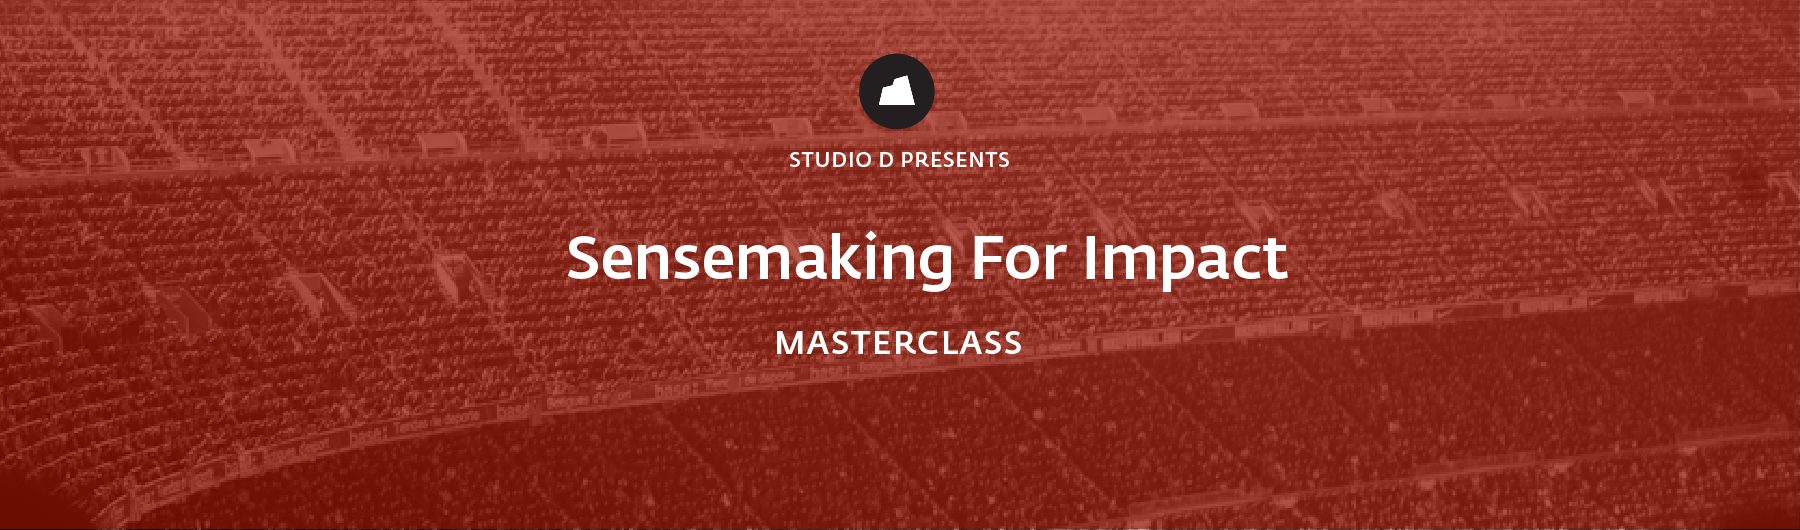 Sensemaking For Impact Masterclass, 21 April 2020, Singapore